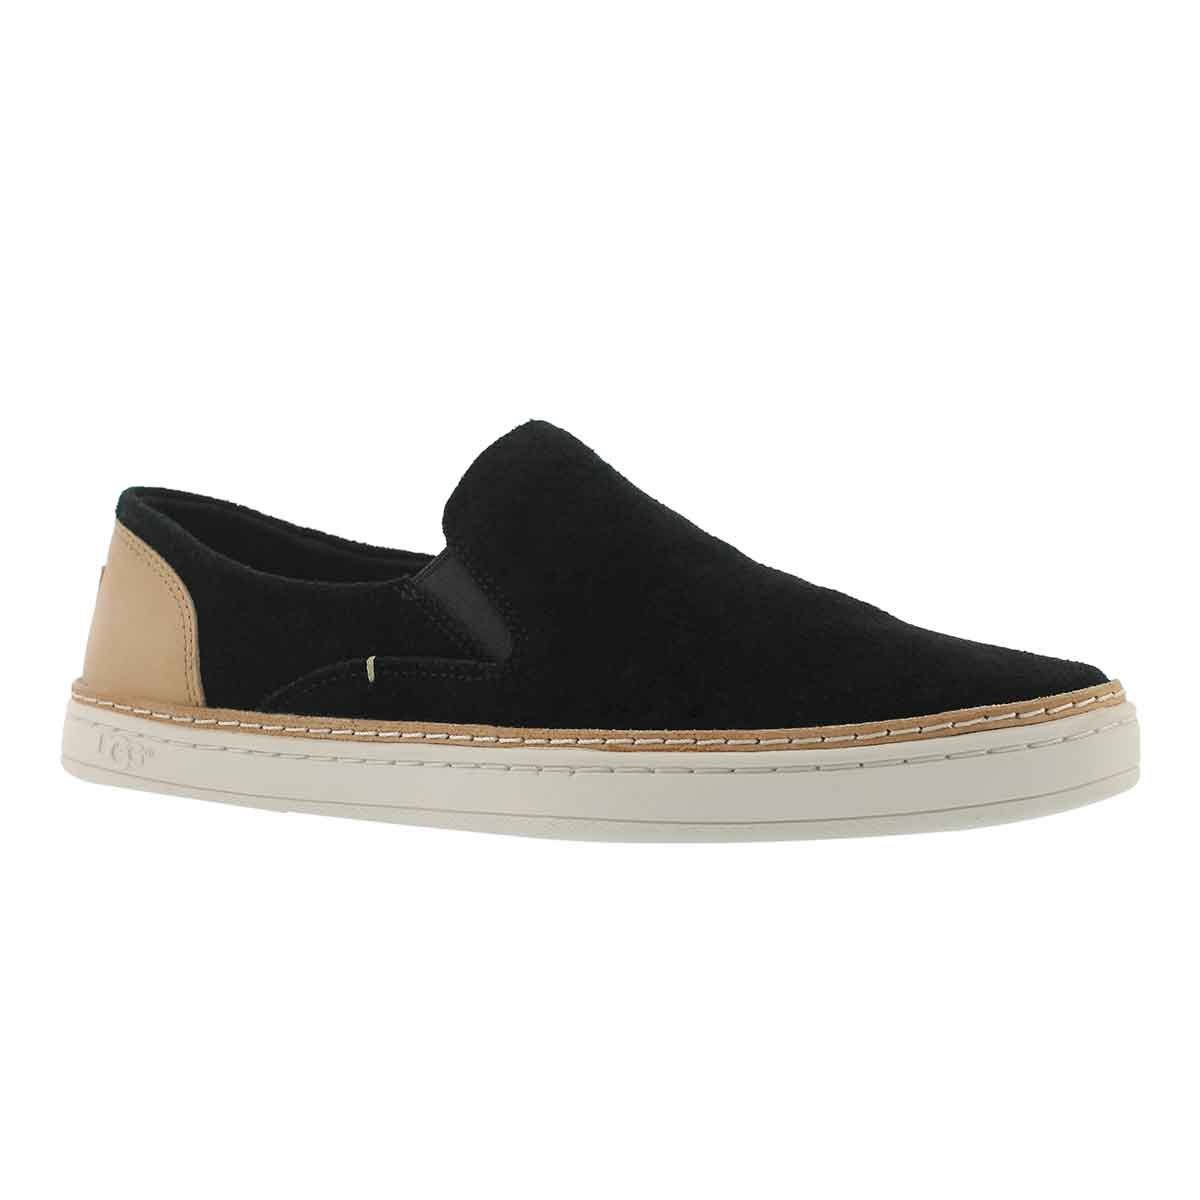 Women's ADLEY PERFORATED black casual slip ons